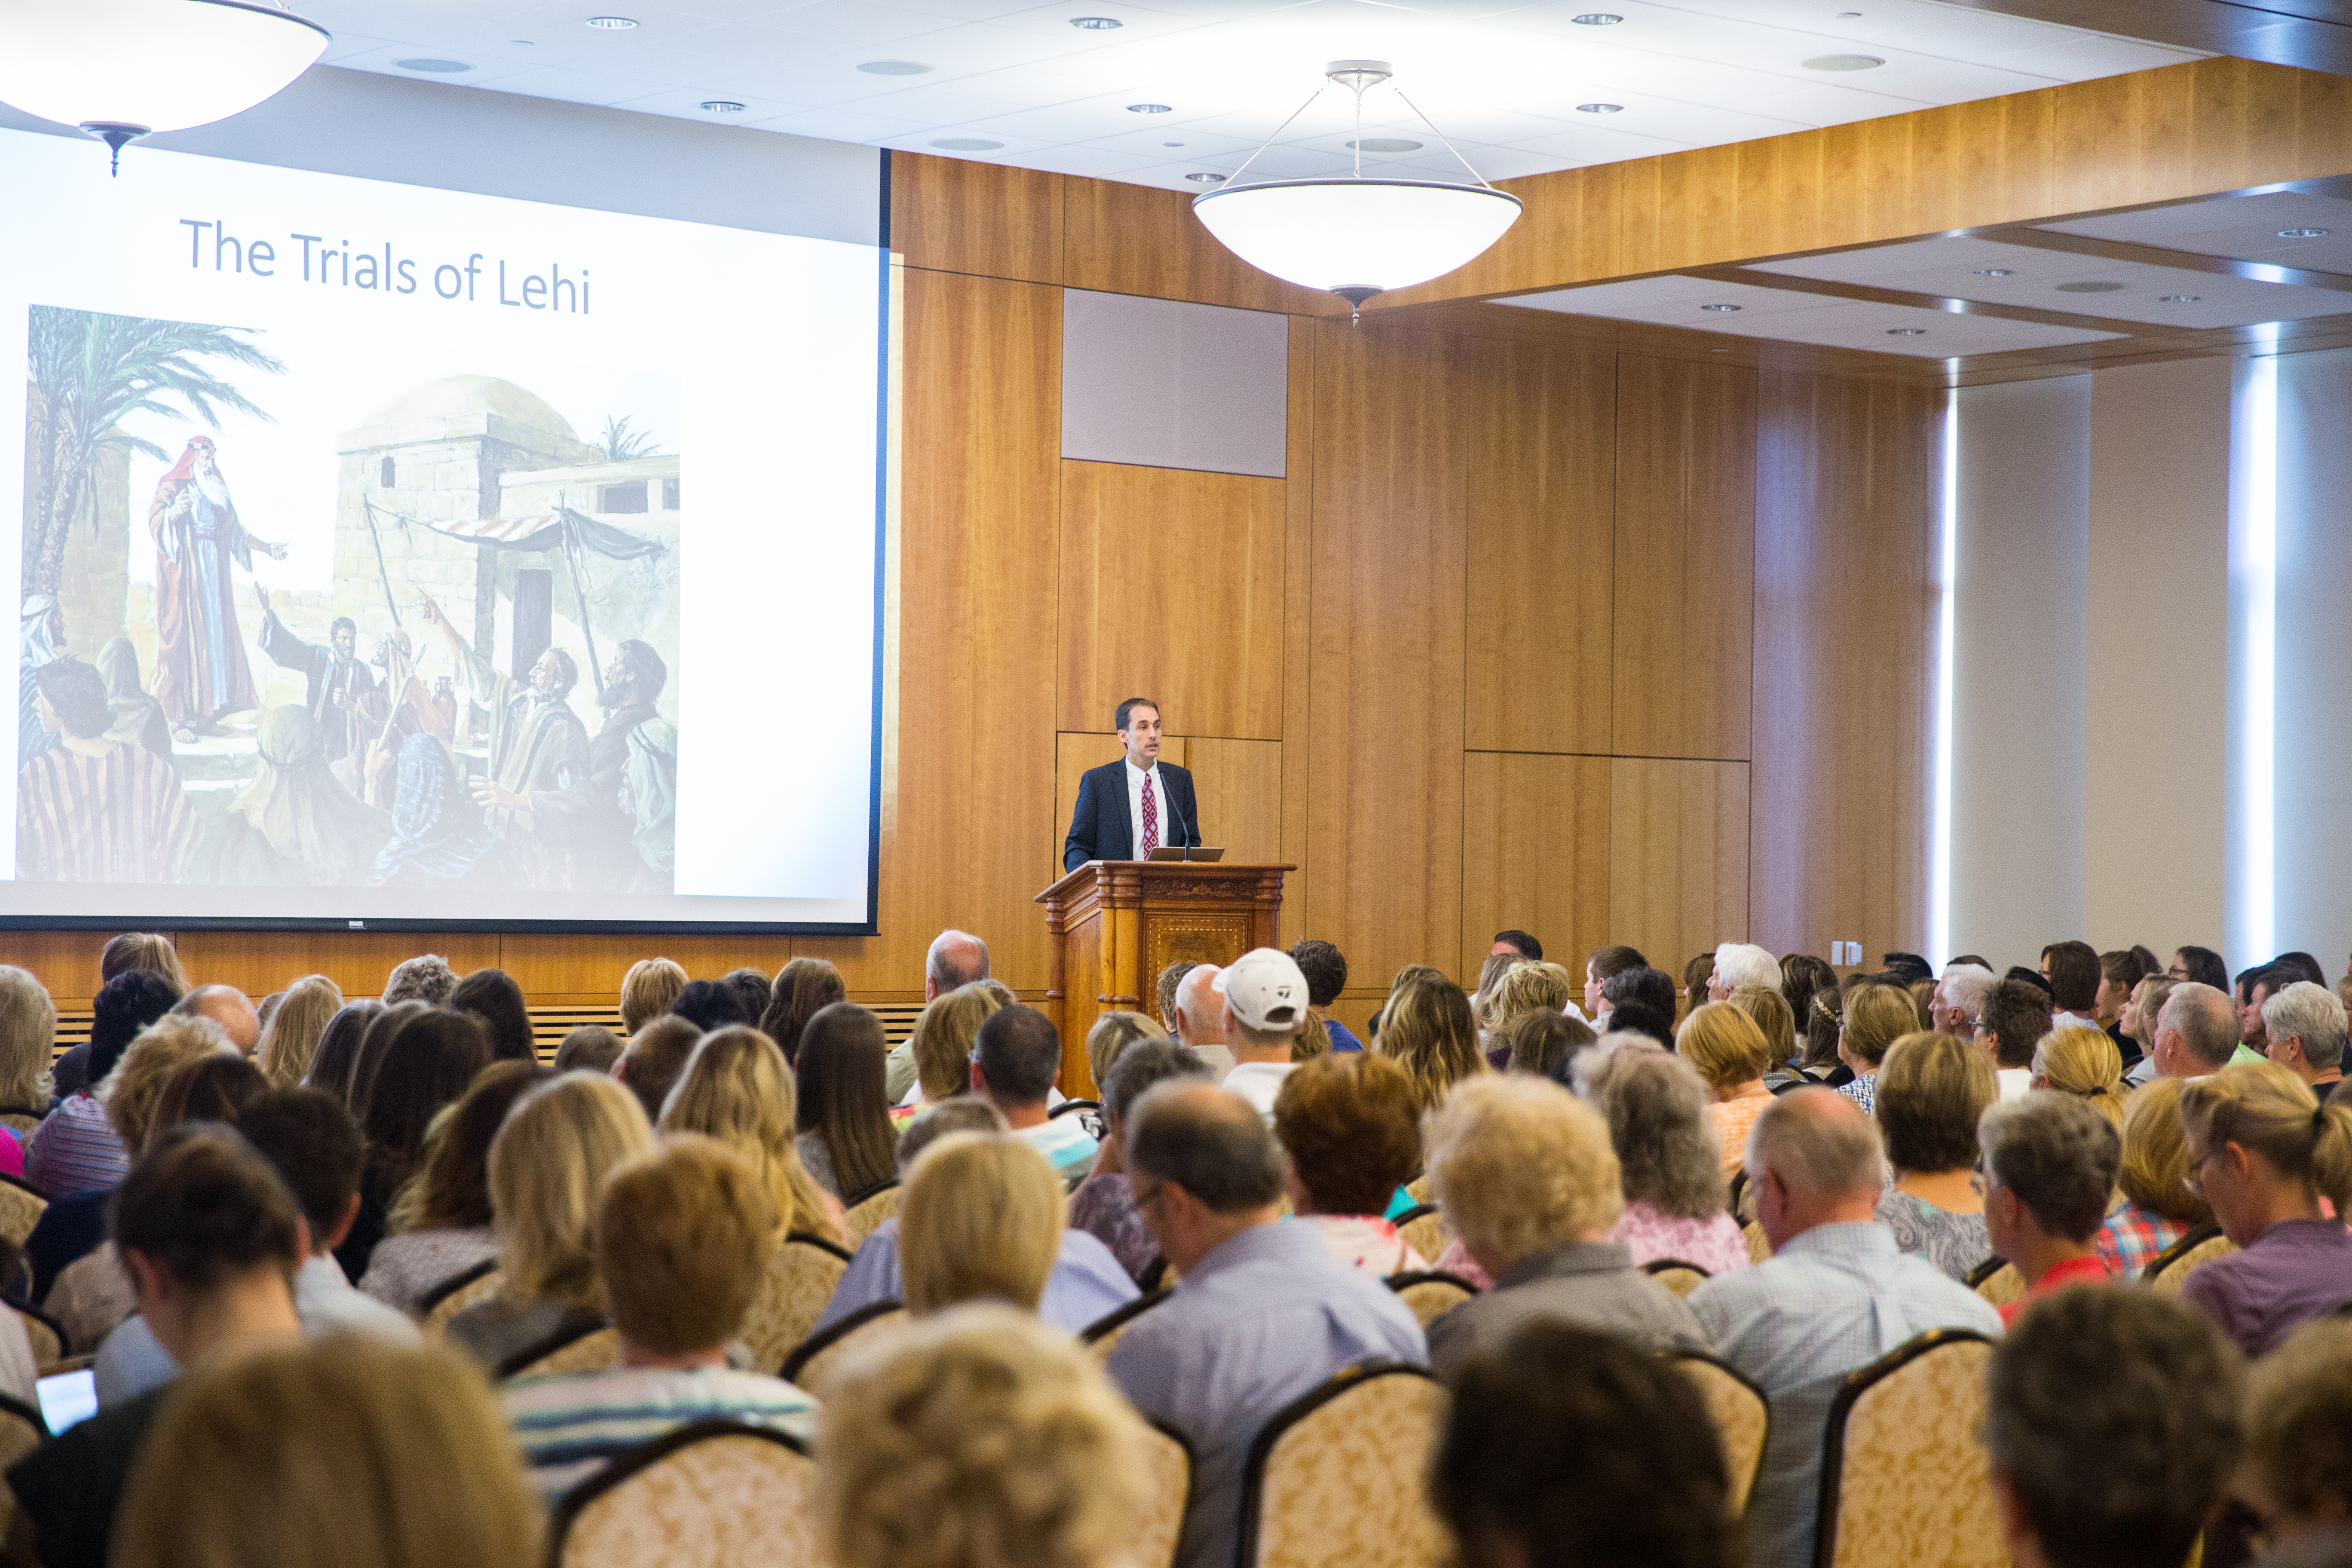 John Hilton III talks about the trials that Lehi endured with his sons Laman and Lemuel. Hilton and Brad Wilcox co-taught a lesson about trials in people's lives. (Maddi Driggs)